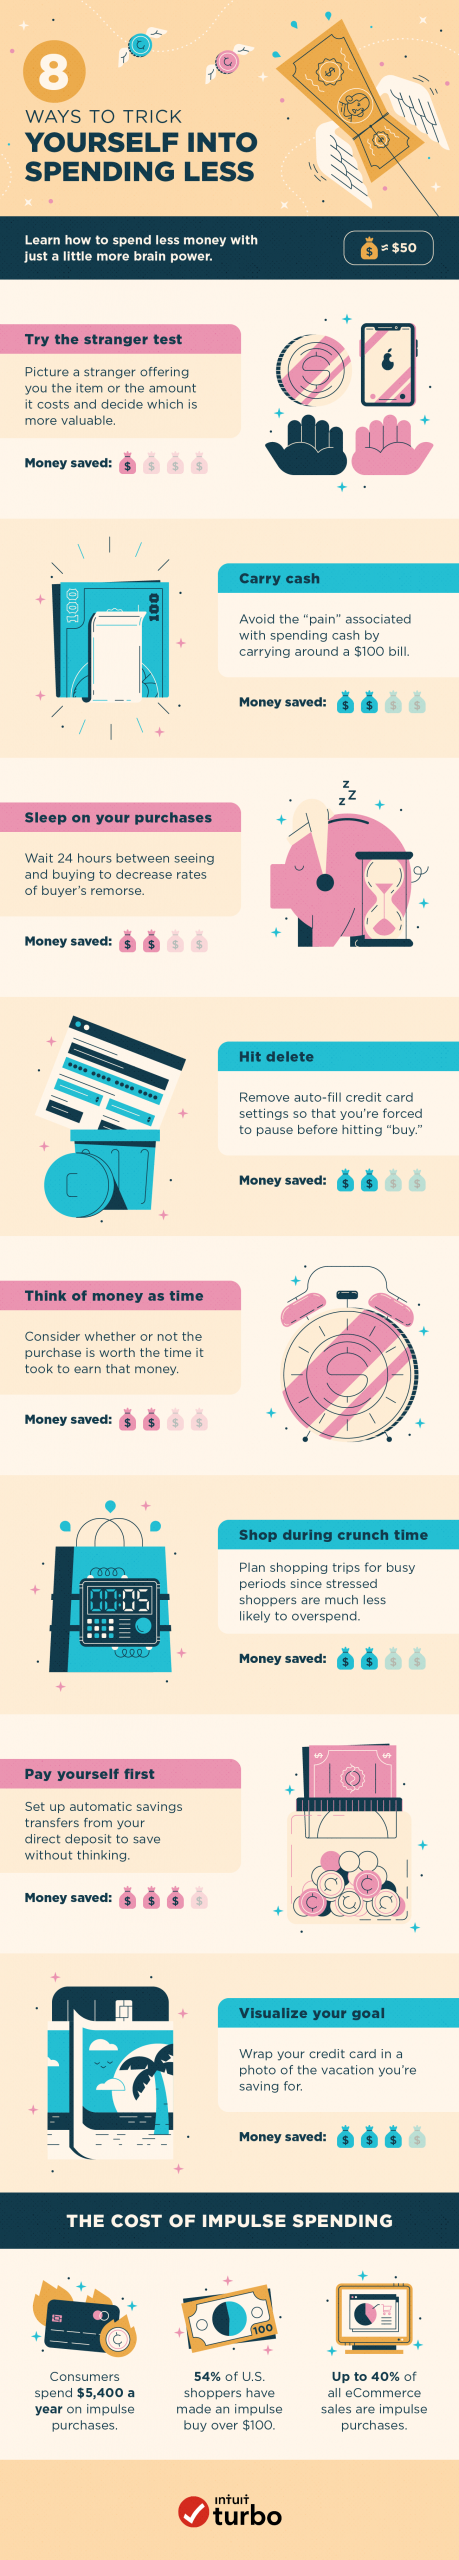 Trick yourself into spending less - an Infographic on Personal Finance